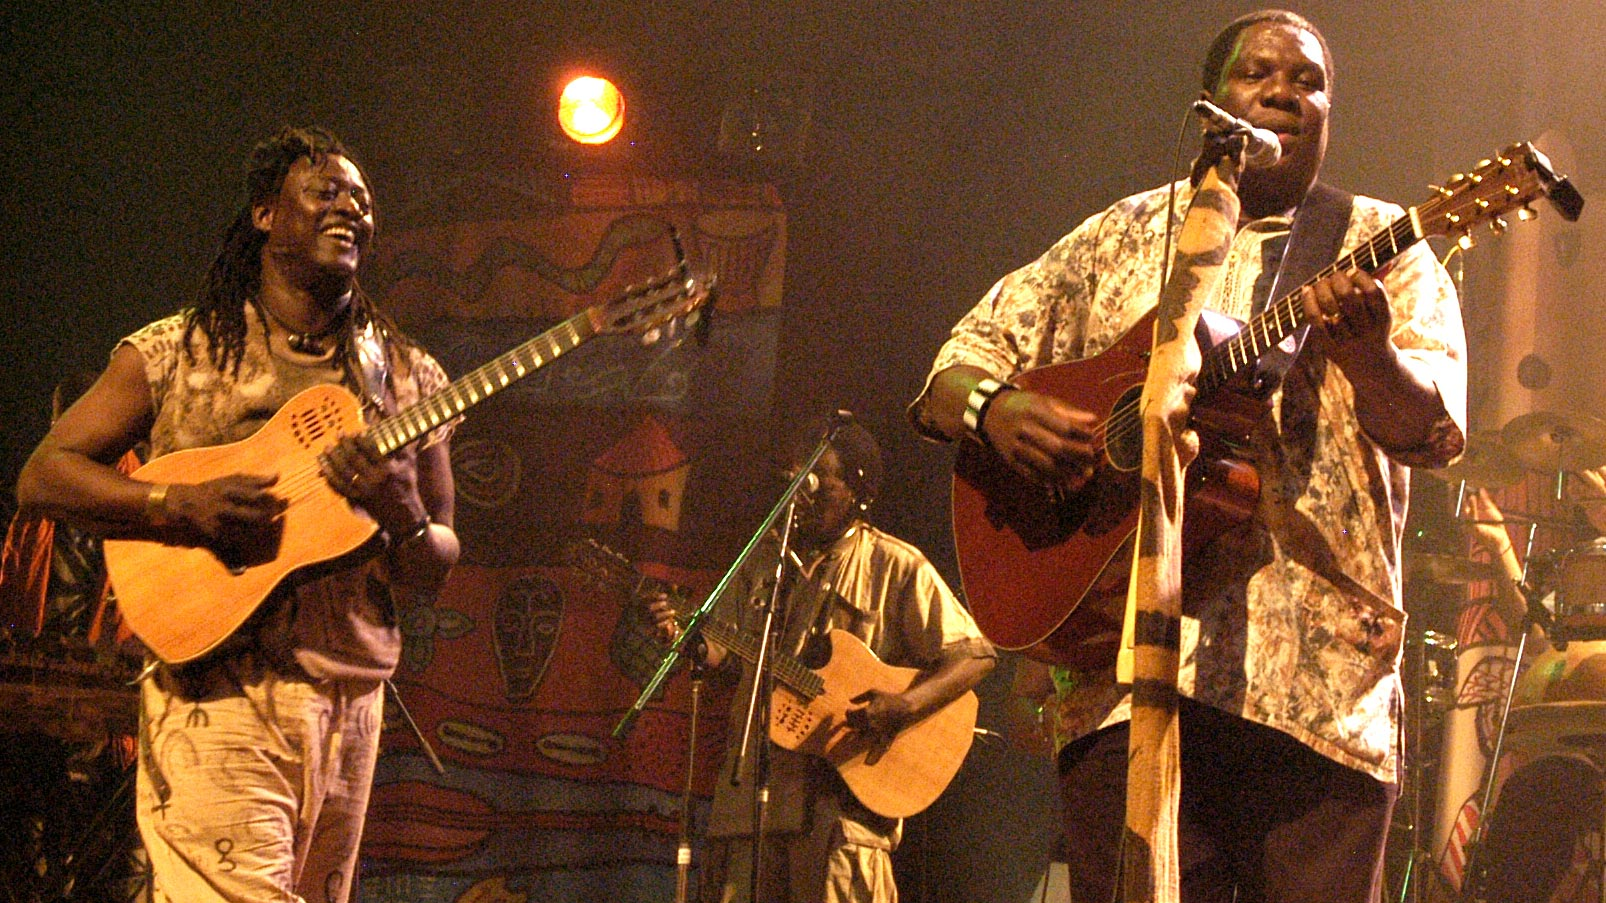 Habib Koite (left) and Vusi Mahlasela perform three times in the Bay Area.